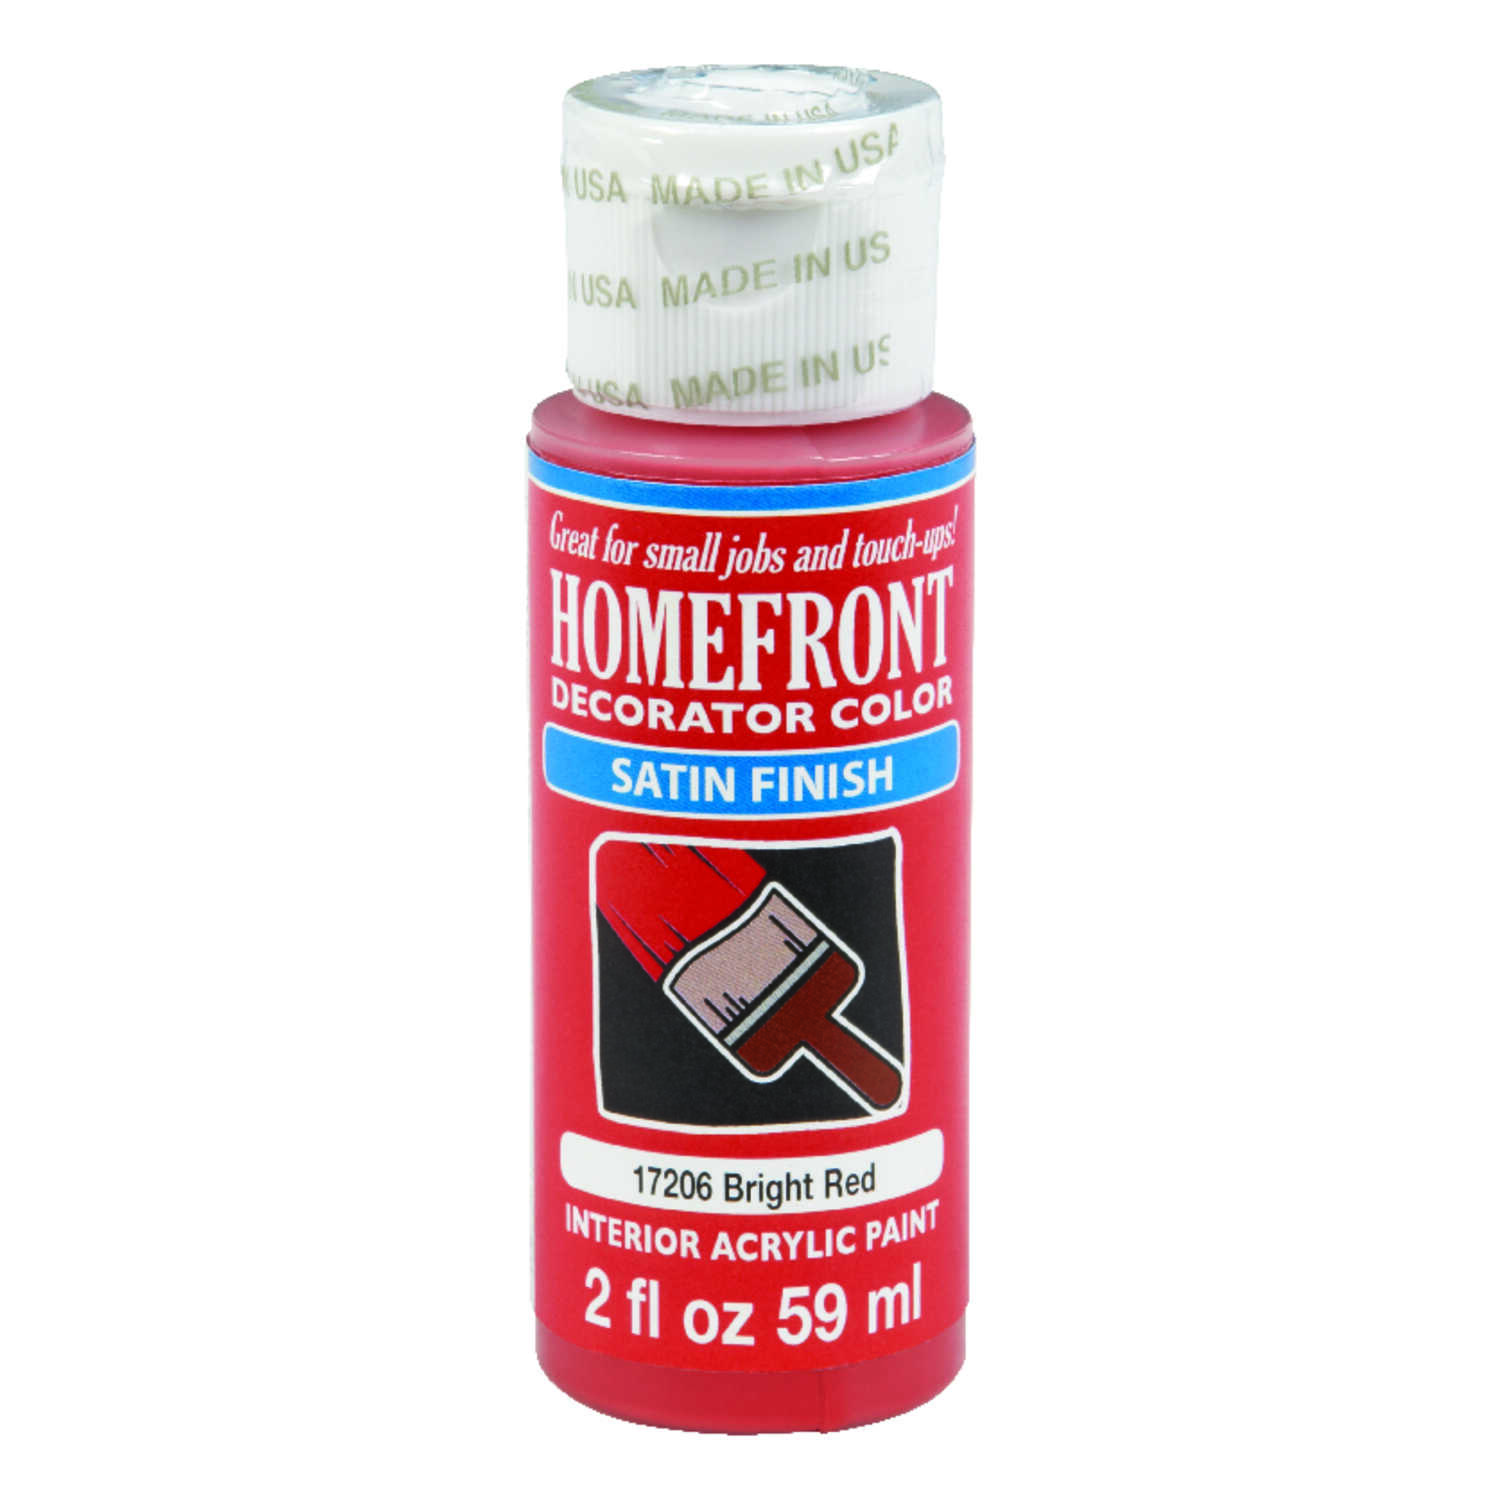 Homefront  Decorator Color  Satin  Bright Red  Paint  2 oz.